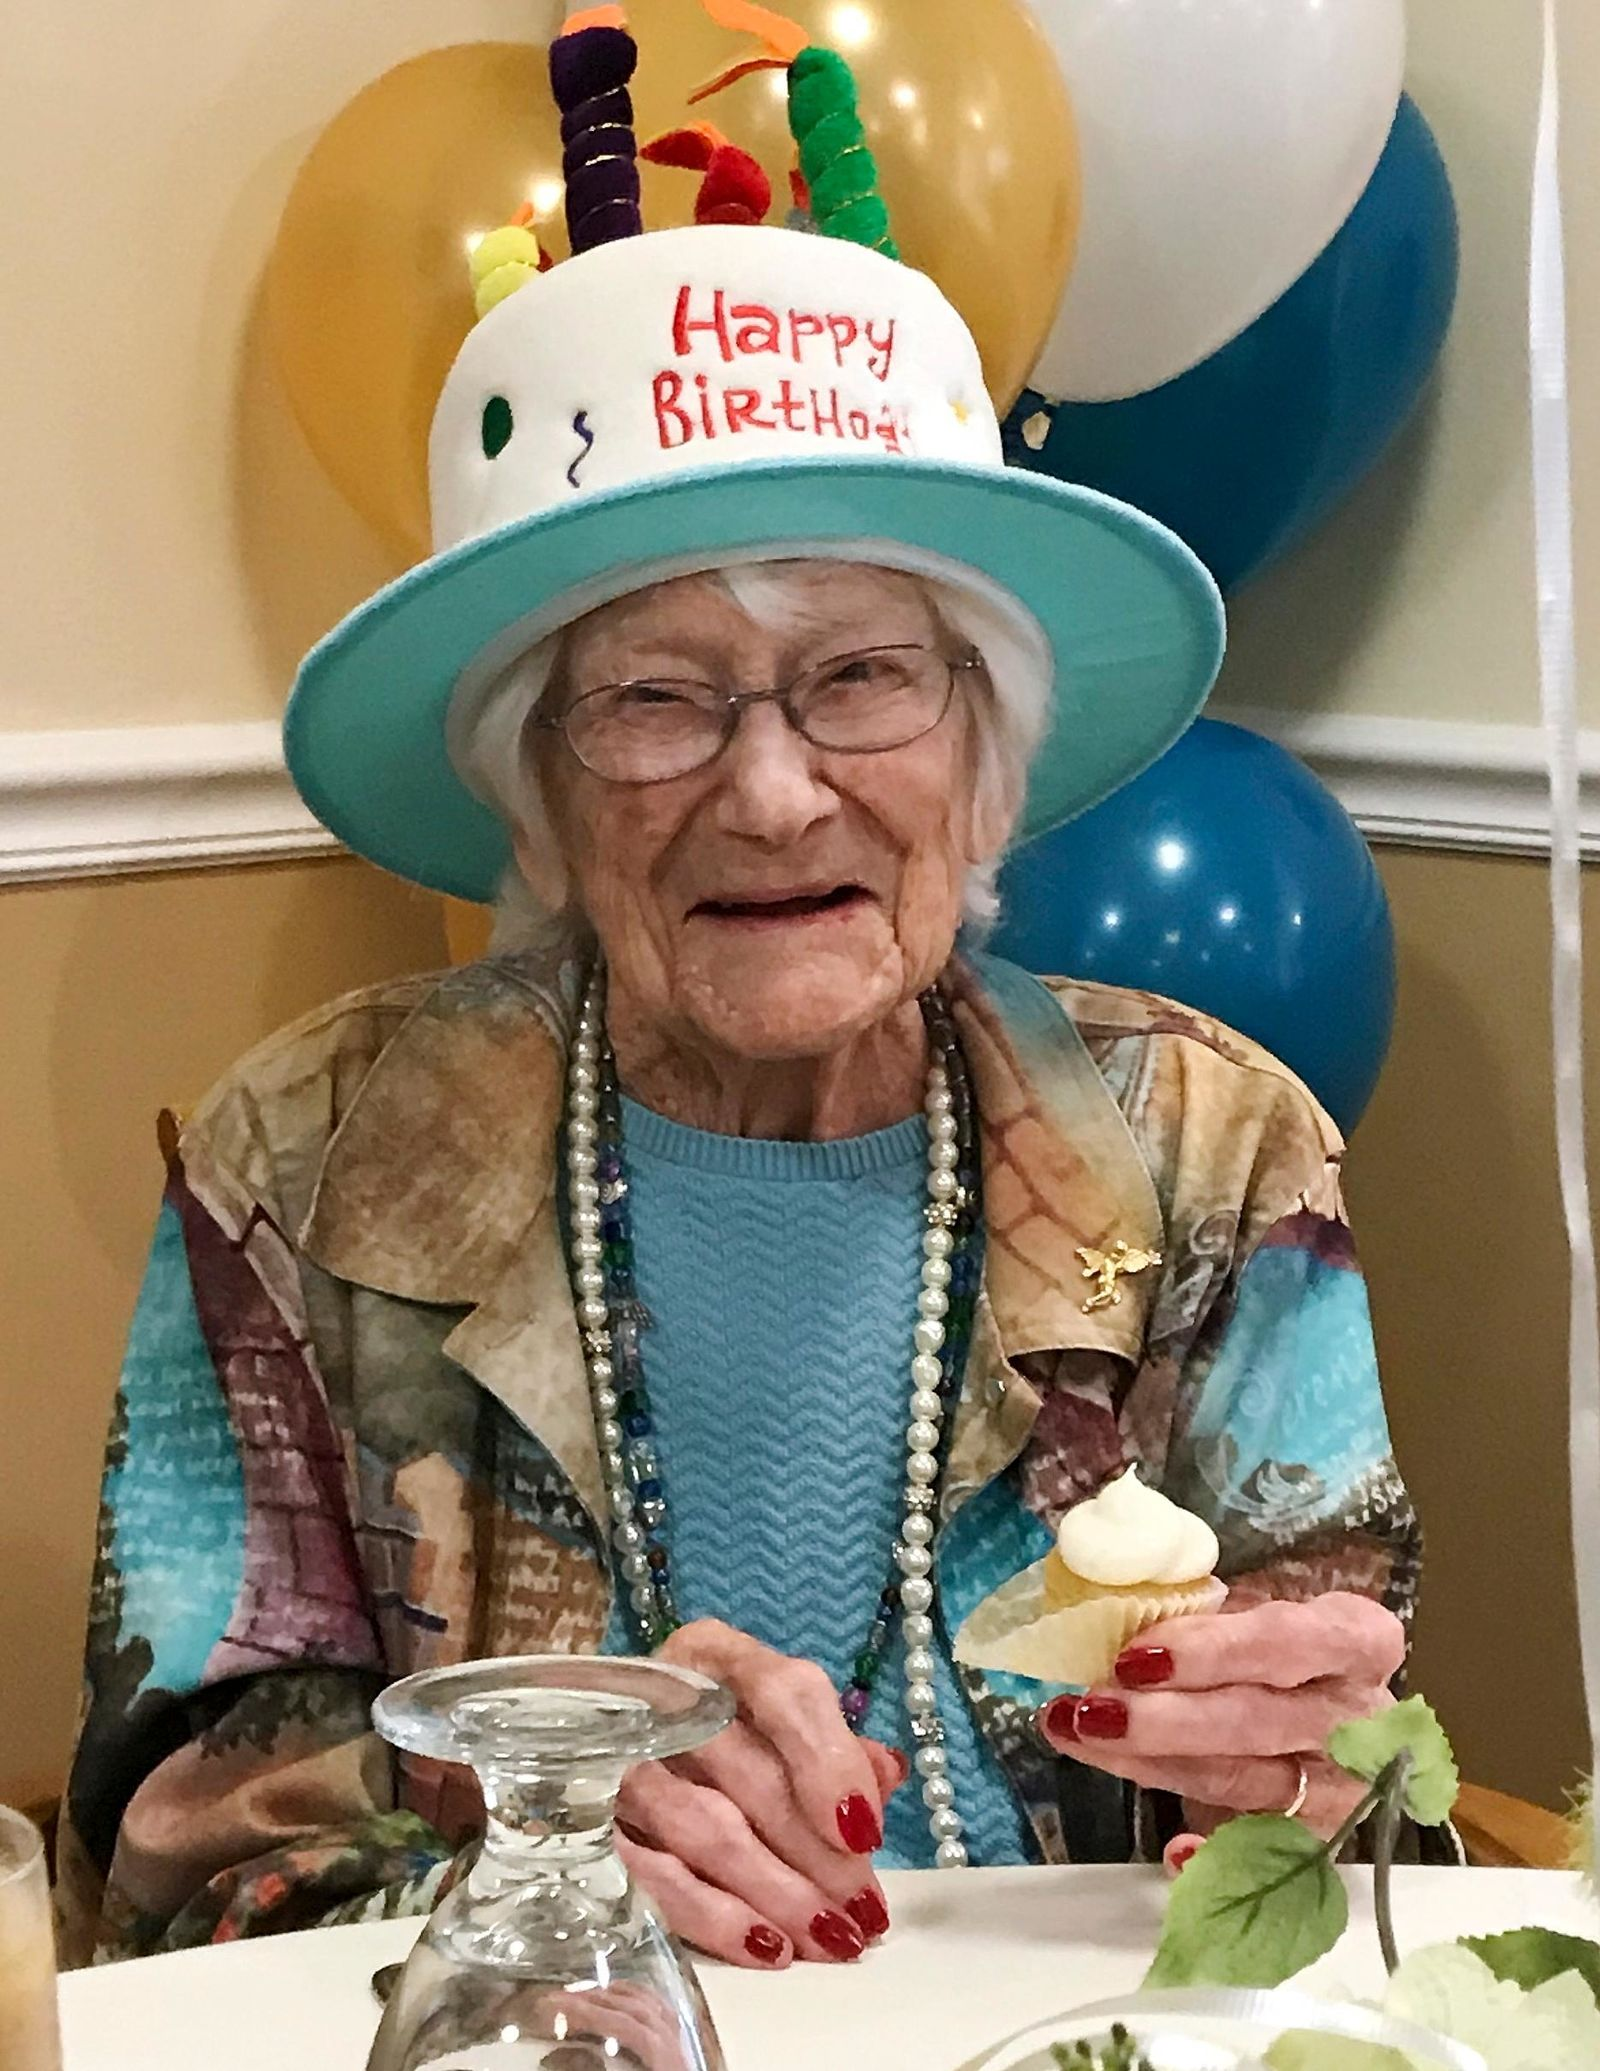 In this photo provided by Tony Venti, Hazel Nilson celebrates her 111th birthday with a peach cupcake, Wednesday, Aug. 21, 2019, at Sunapee Cove in Sunapee, N.H. (Tony Venti via AP)